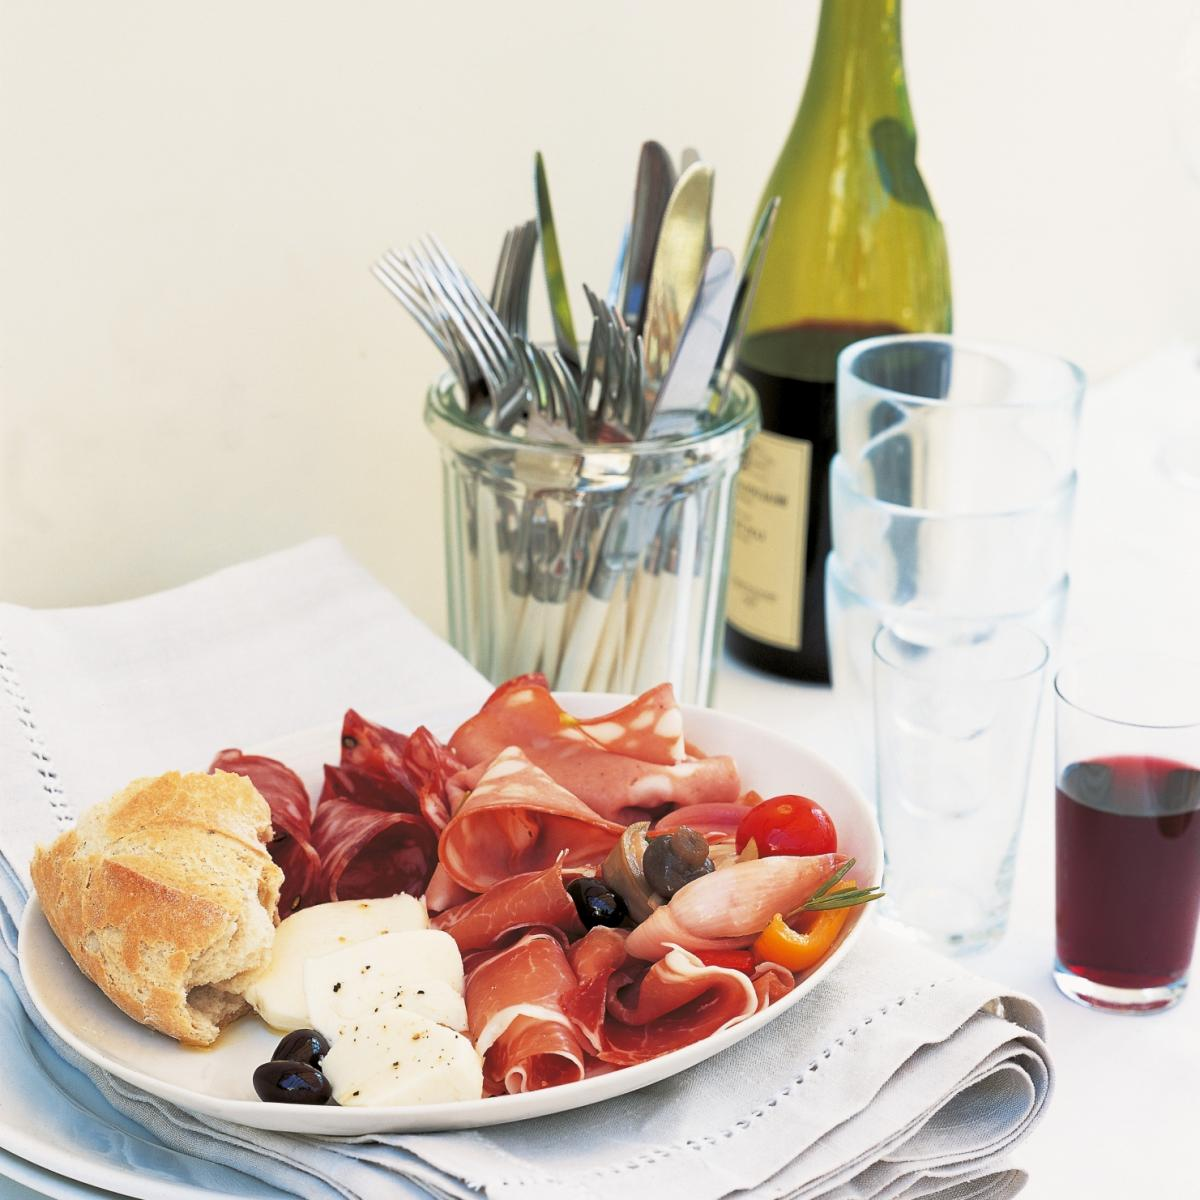 A picture of Delia's Antipasti recipe